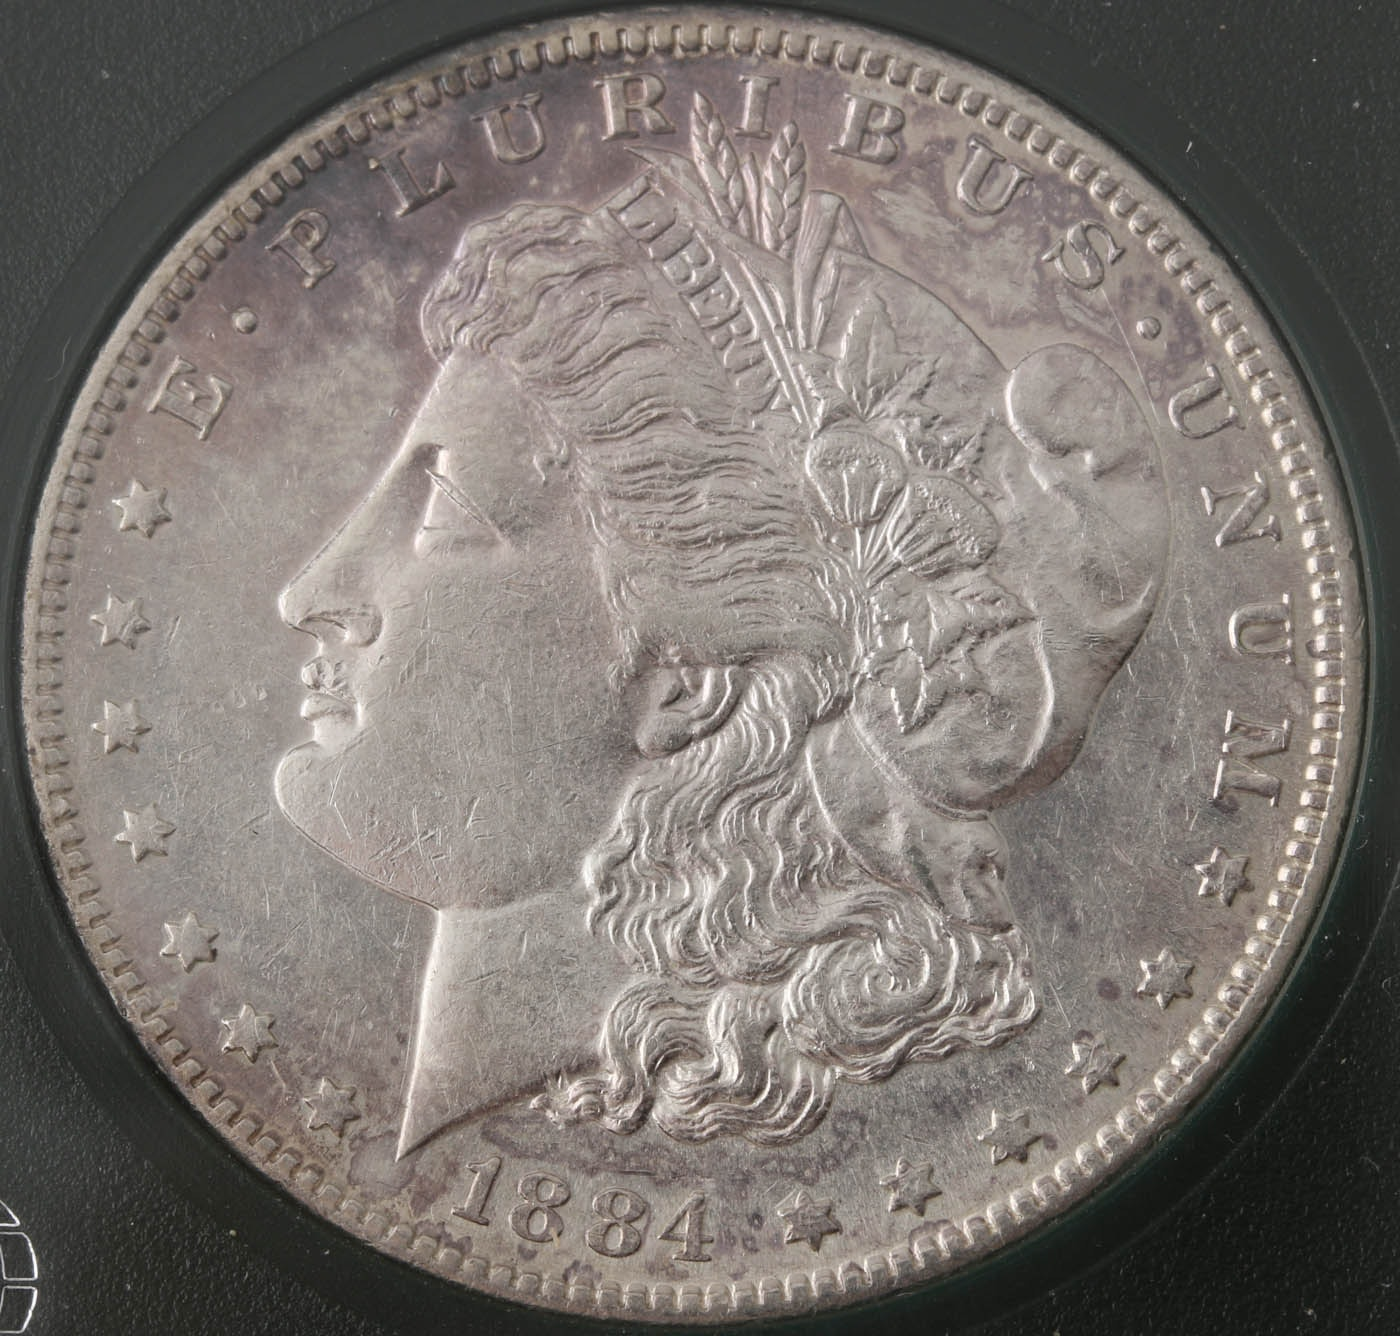 1884 S silver Morgan dollar